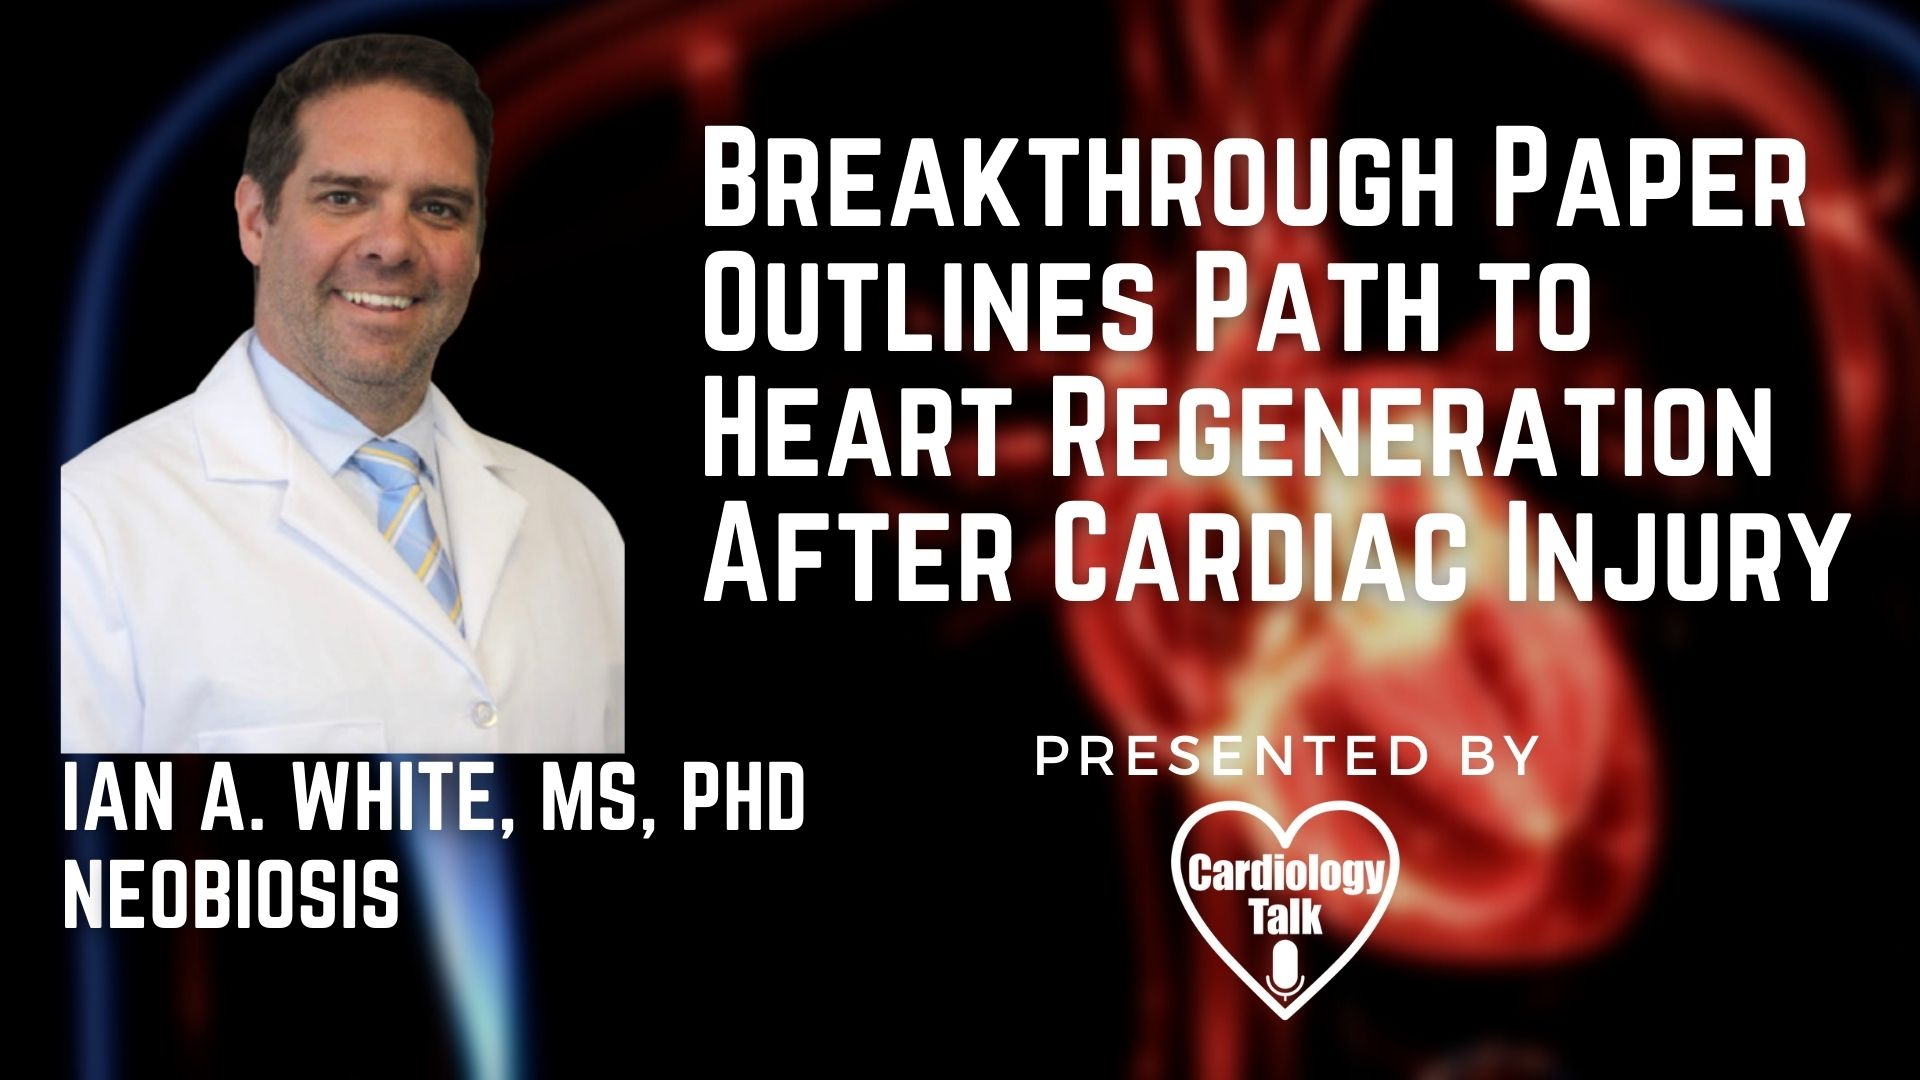 Ian A. White, MS, PhD #Neobiosis #HeartRegeneration #CardiacInjury #Cardiology #Heart #Research Breakthrough Paper Outlines Path to Heart Regeneration After Cardiac Injury